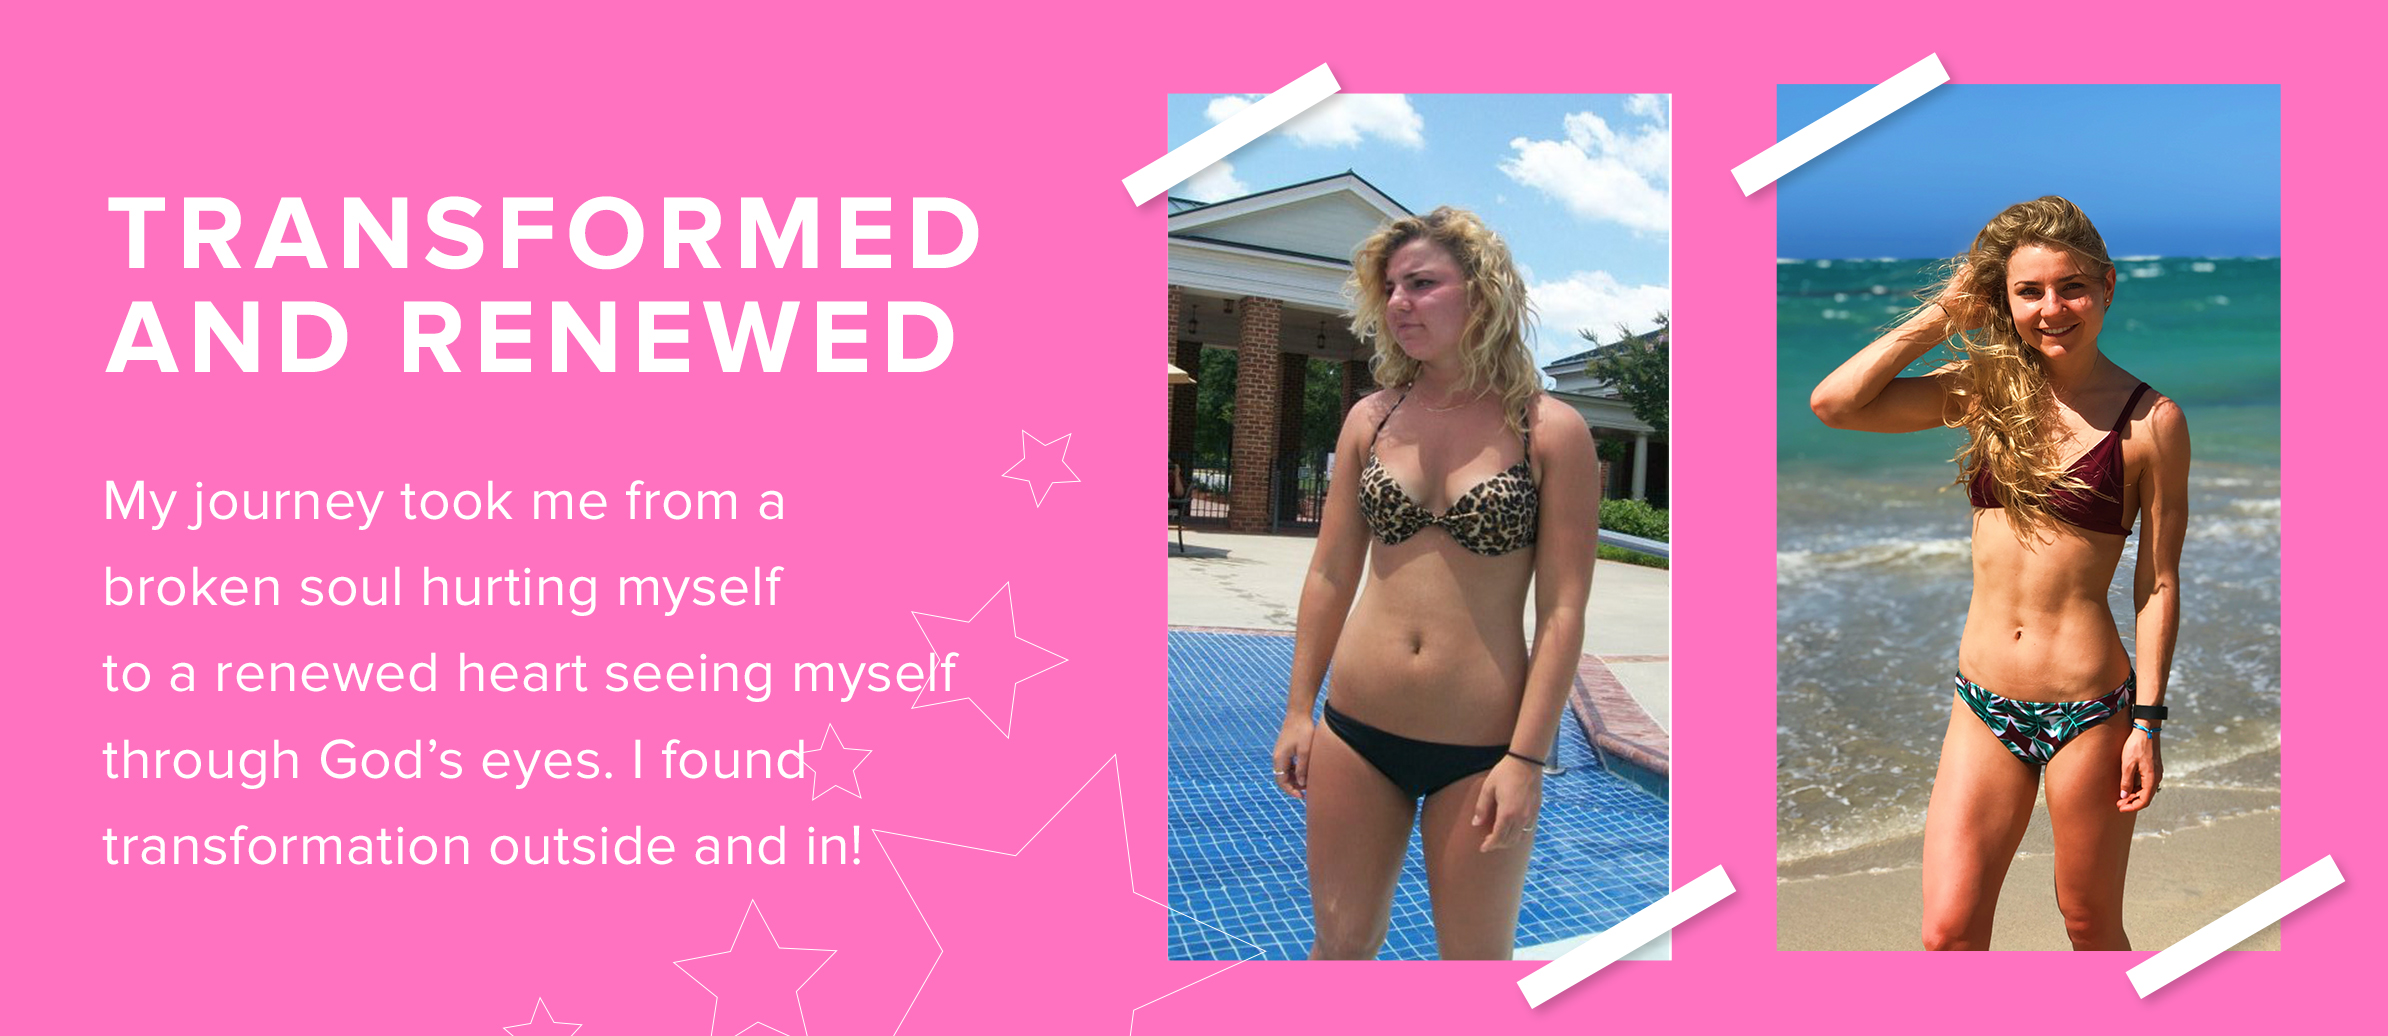 Fitstagram Michelle lost weight and found self-love when she case herself through God's eyes.